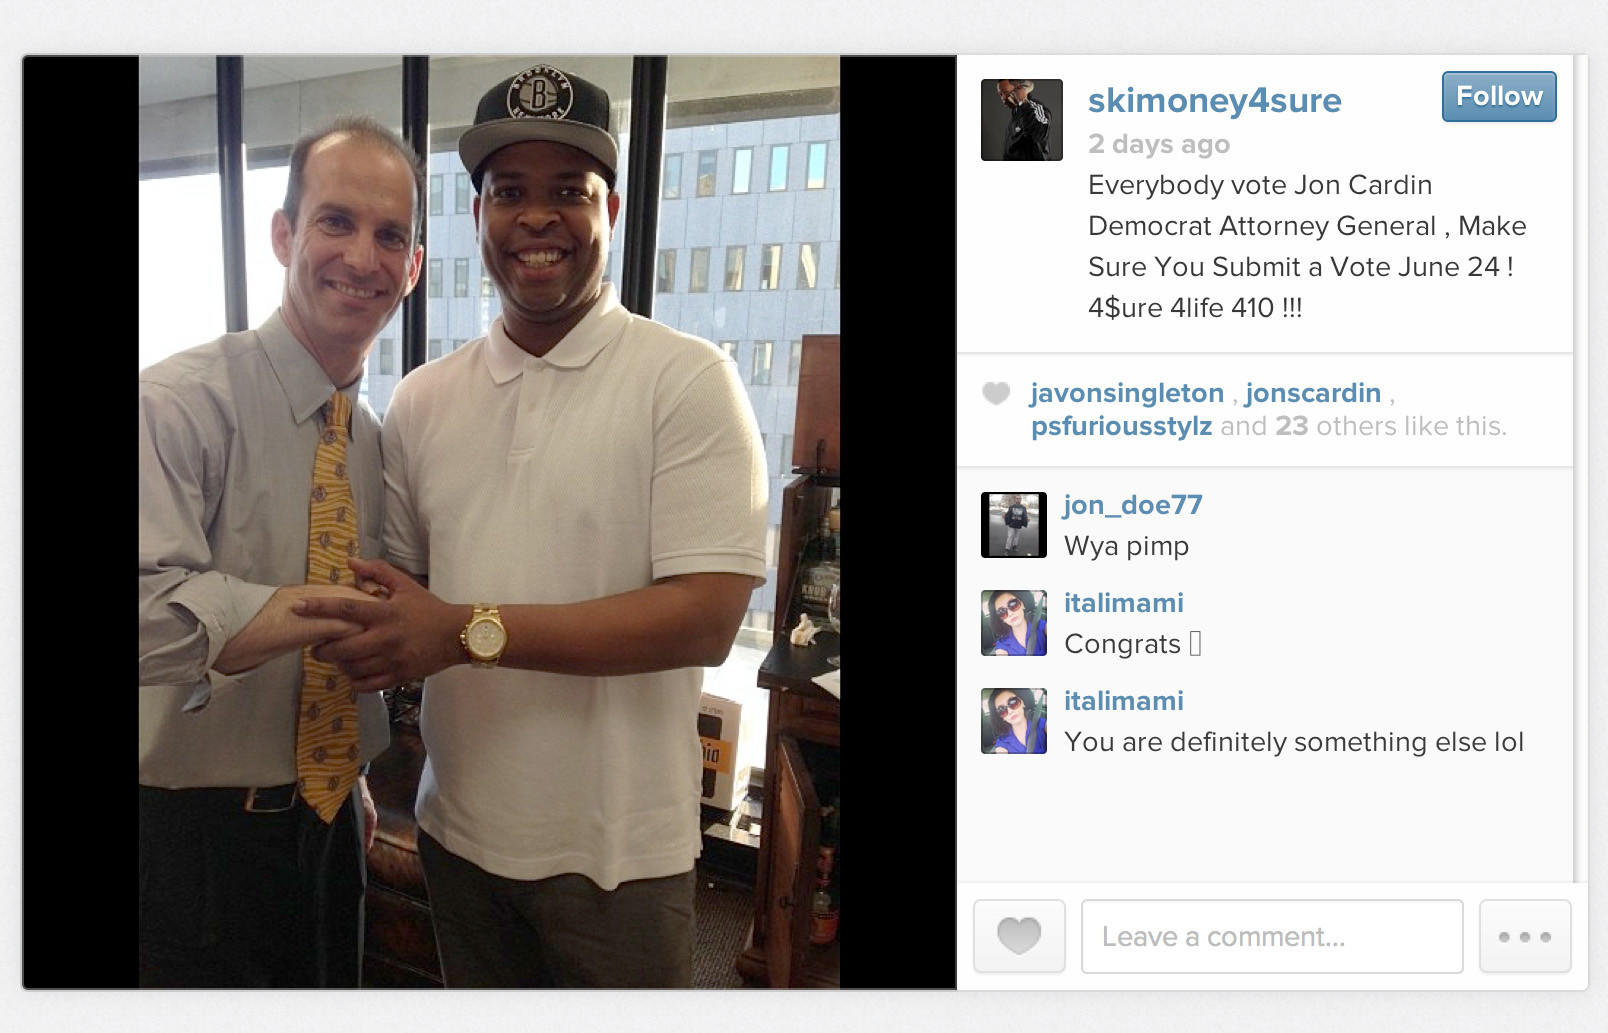 Screenshot of Instagram photo of Jon Cardin and rapper Ski Money, who endorsed the candidate for attorney general on Instagram and Twitter.